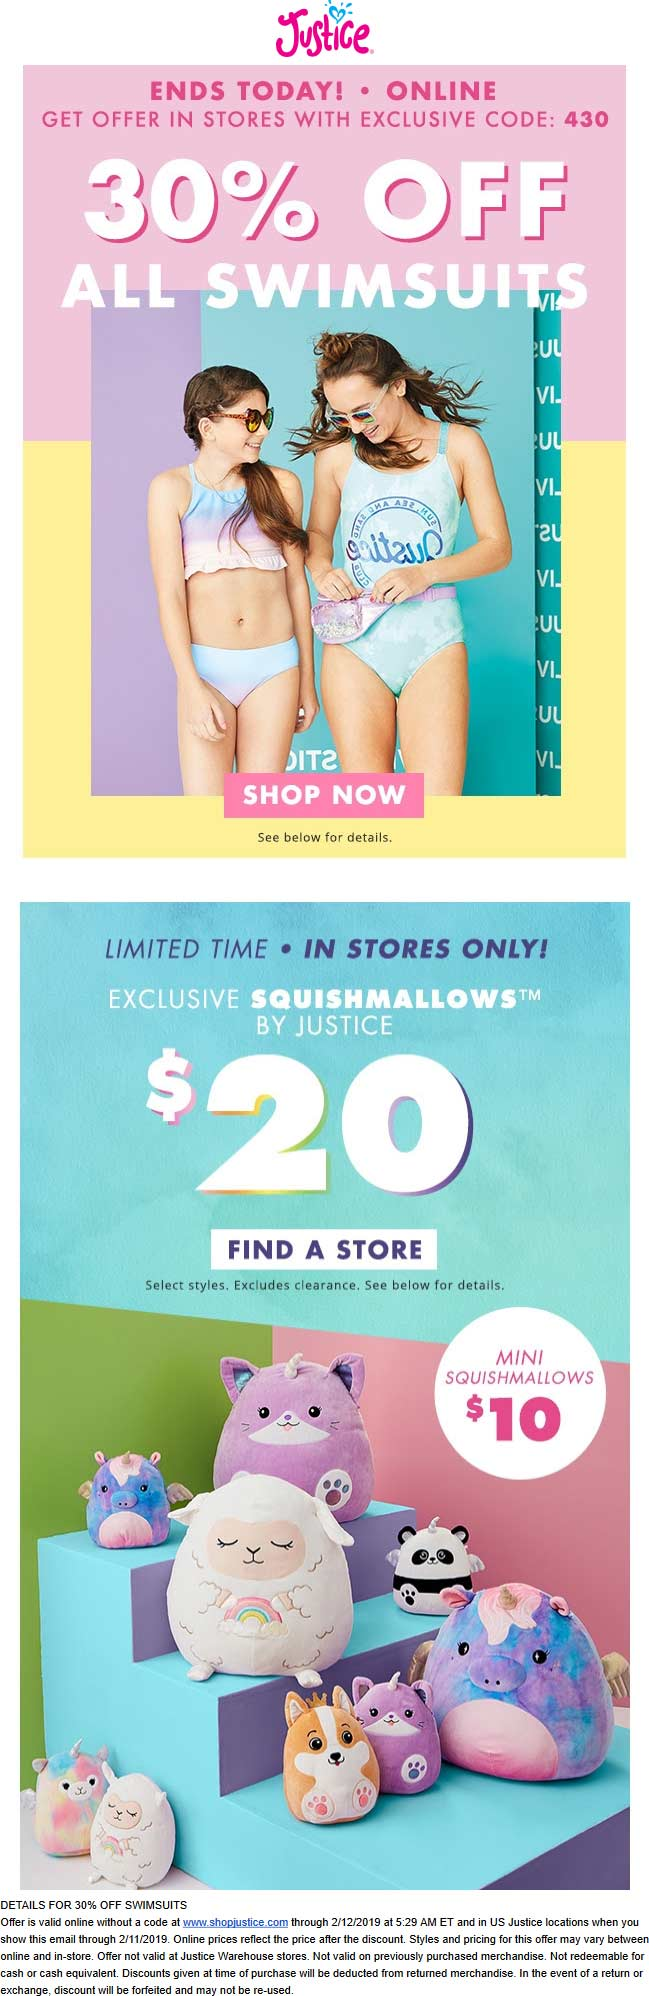 Justice Coupon July 2019 30% off swimsuits today at Justice, ditto online